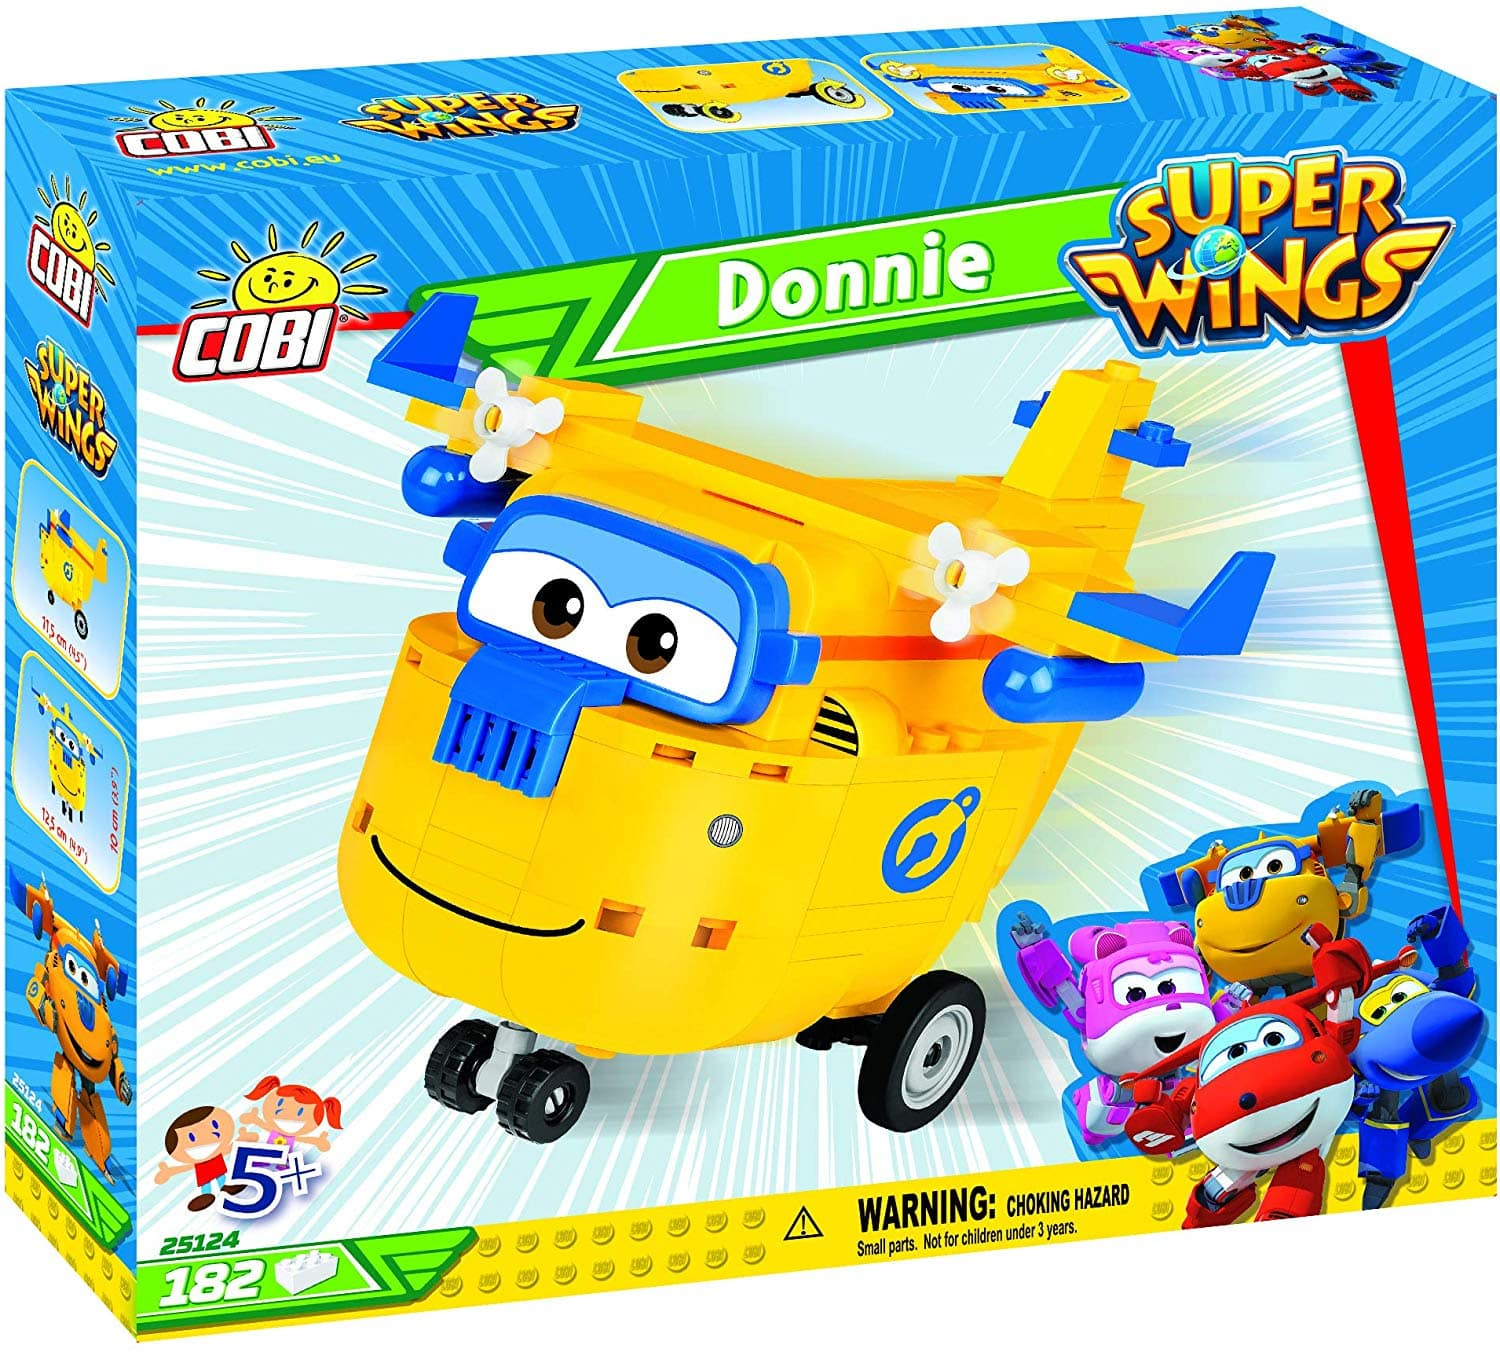 COBI Super Wings, Donnie - $7.11 at Amazon + free shipping with prime